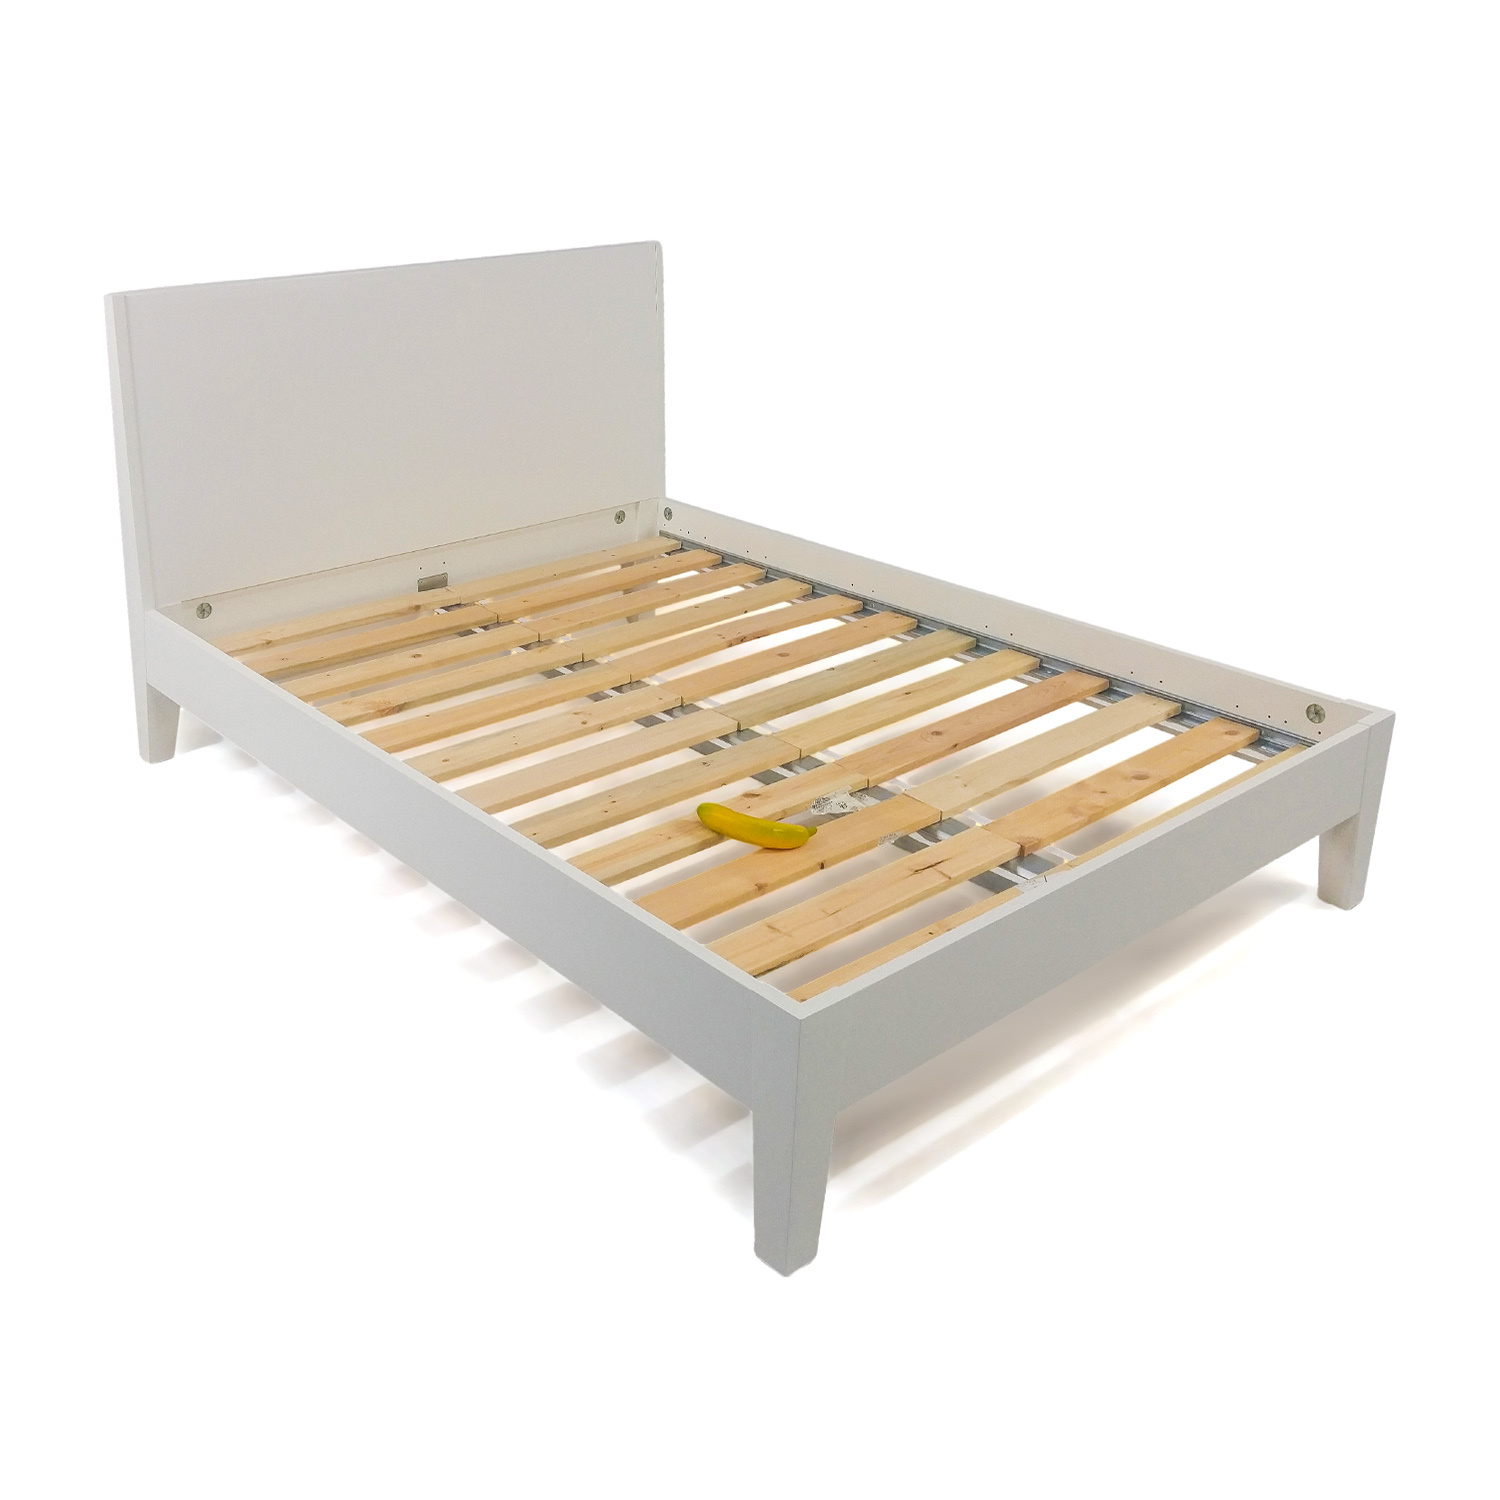 50 off ikea full malm bed frame beds for Full size bed ikea